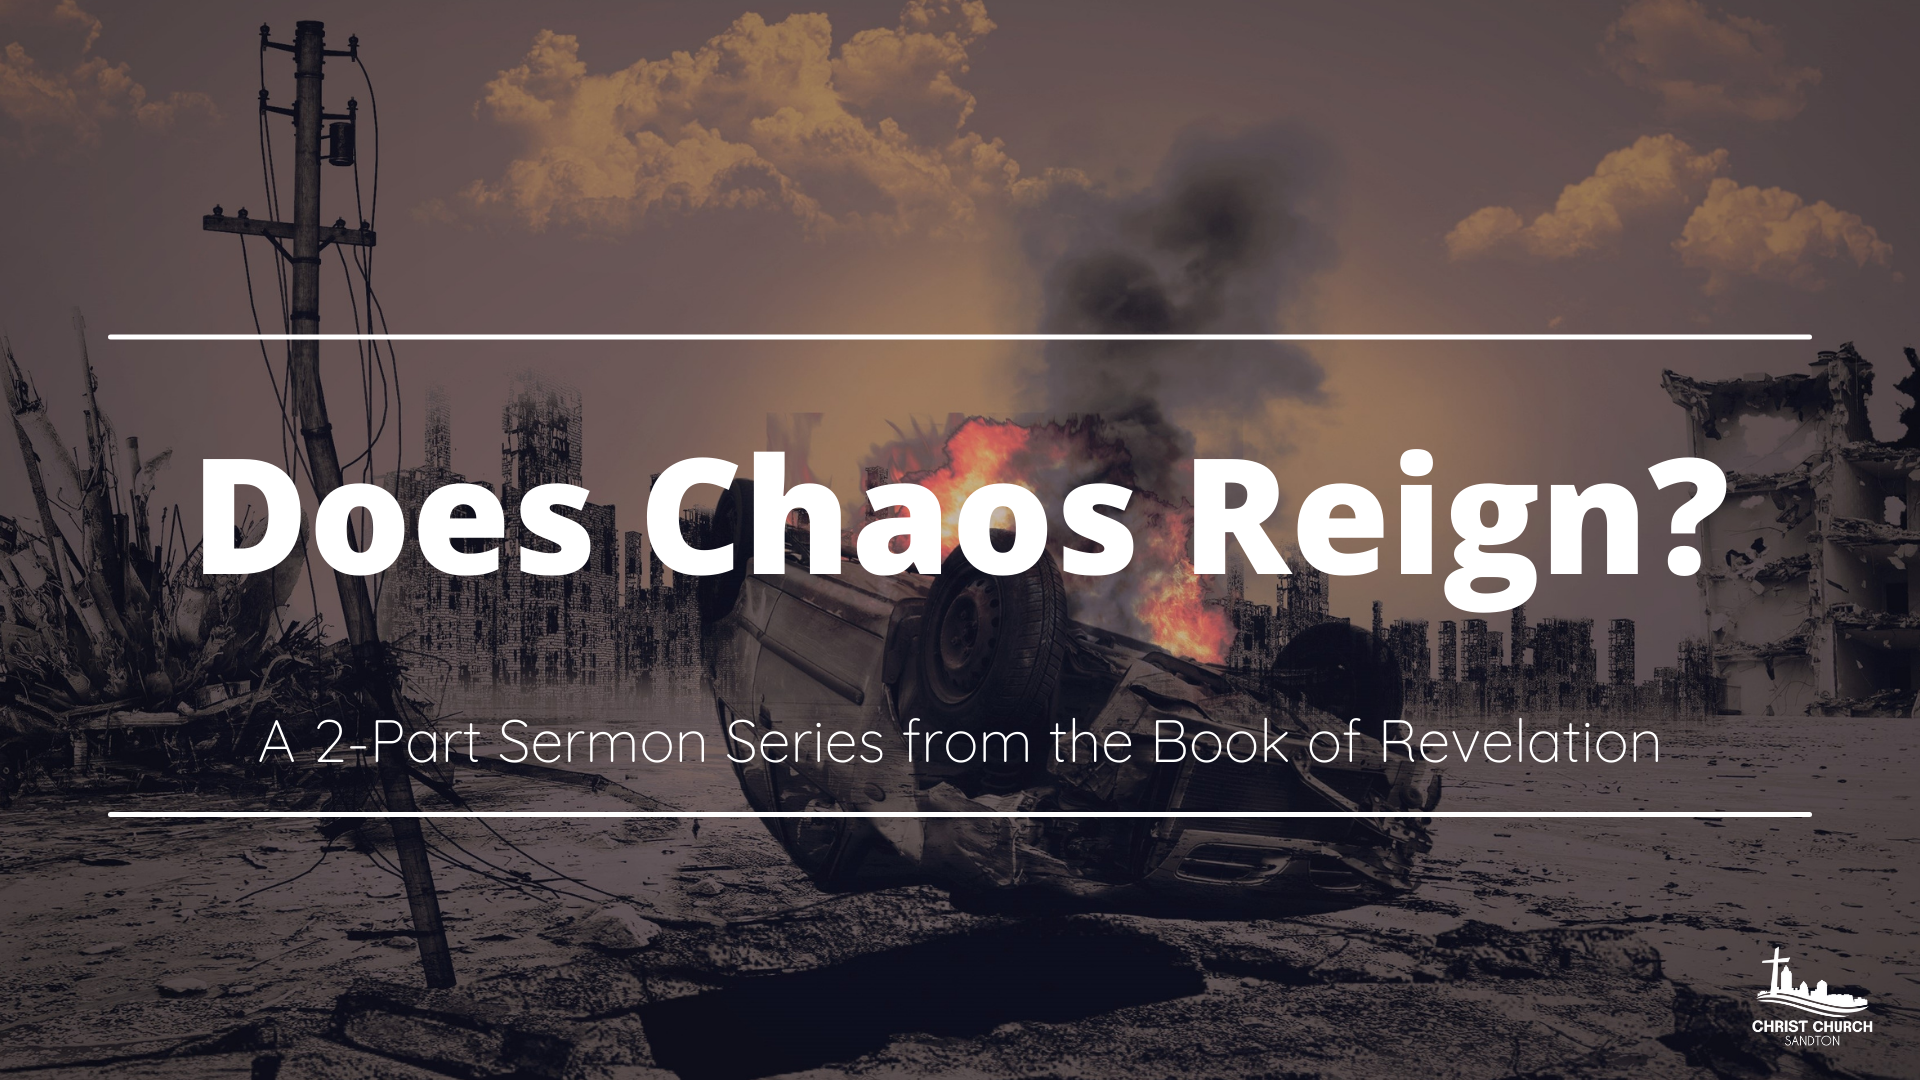 Two-part series in Revelation